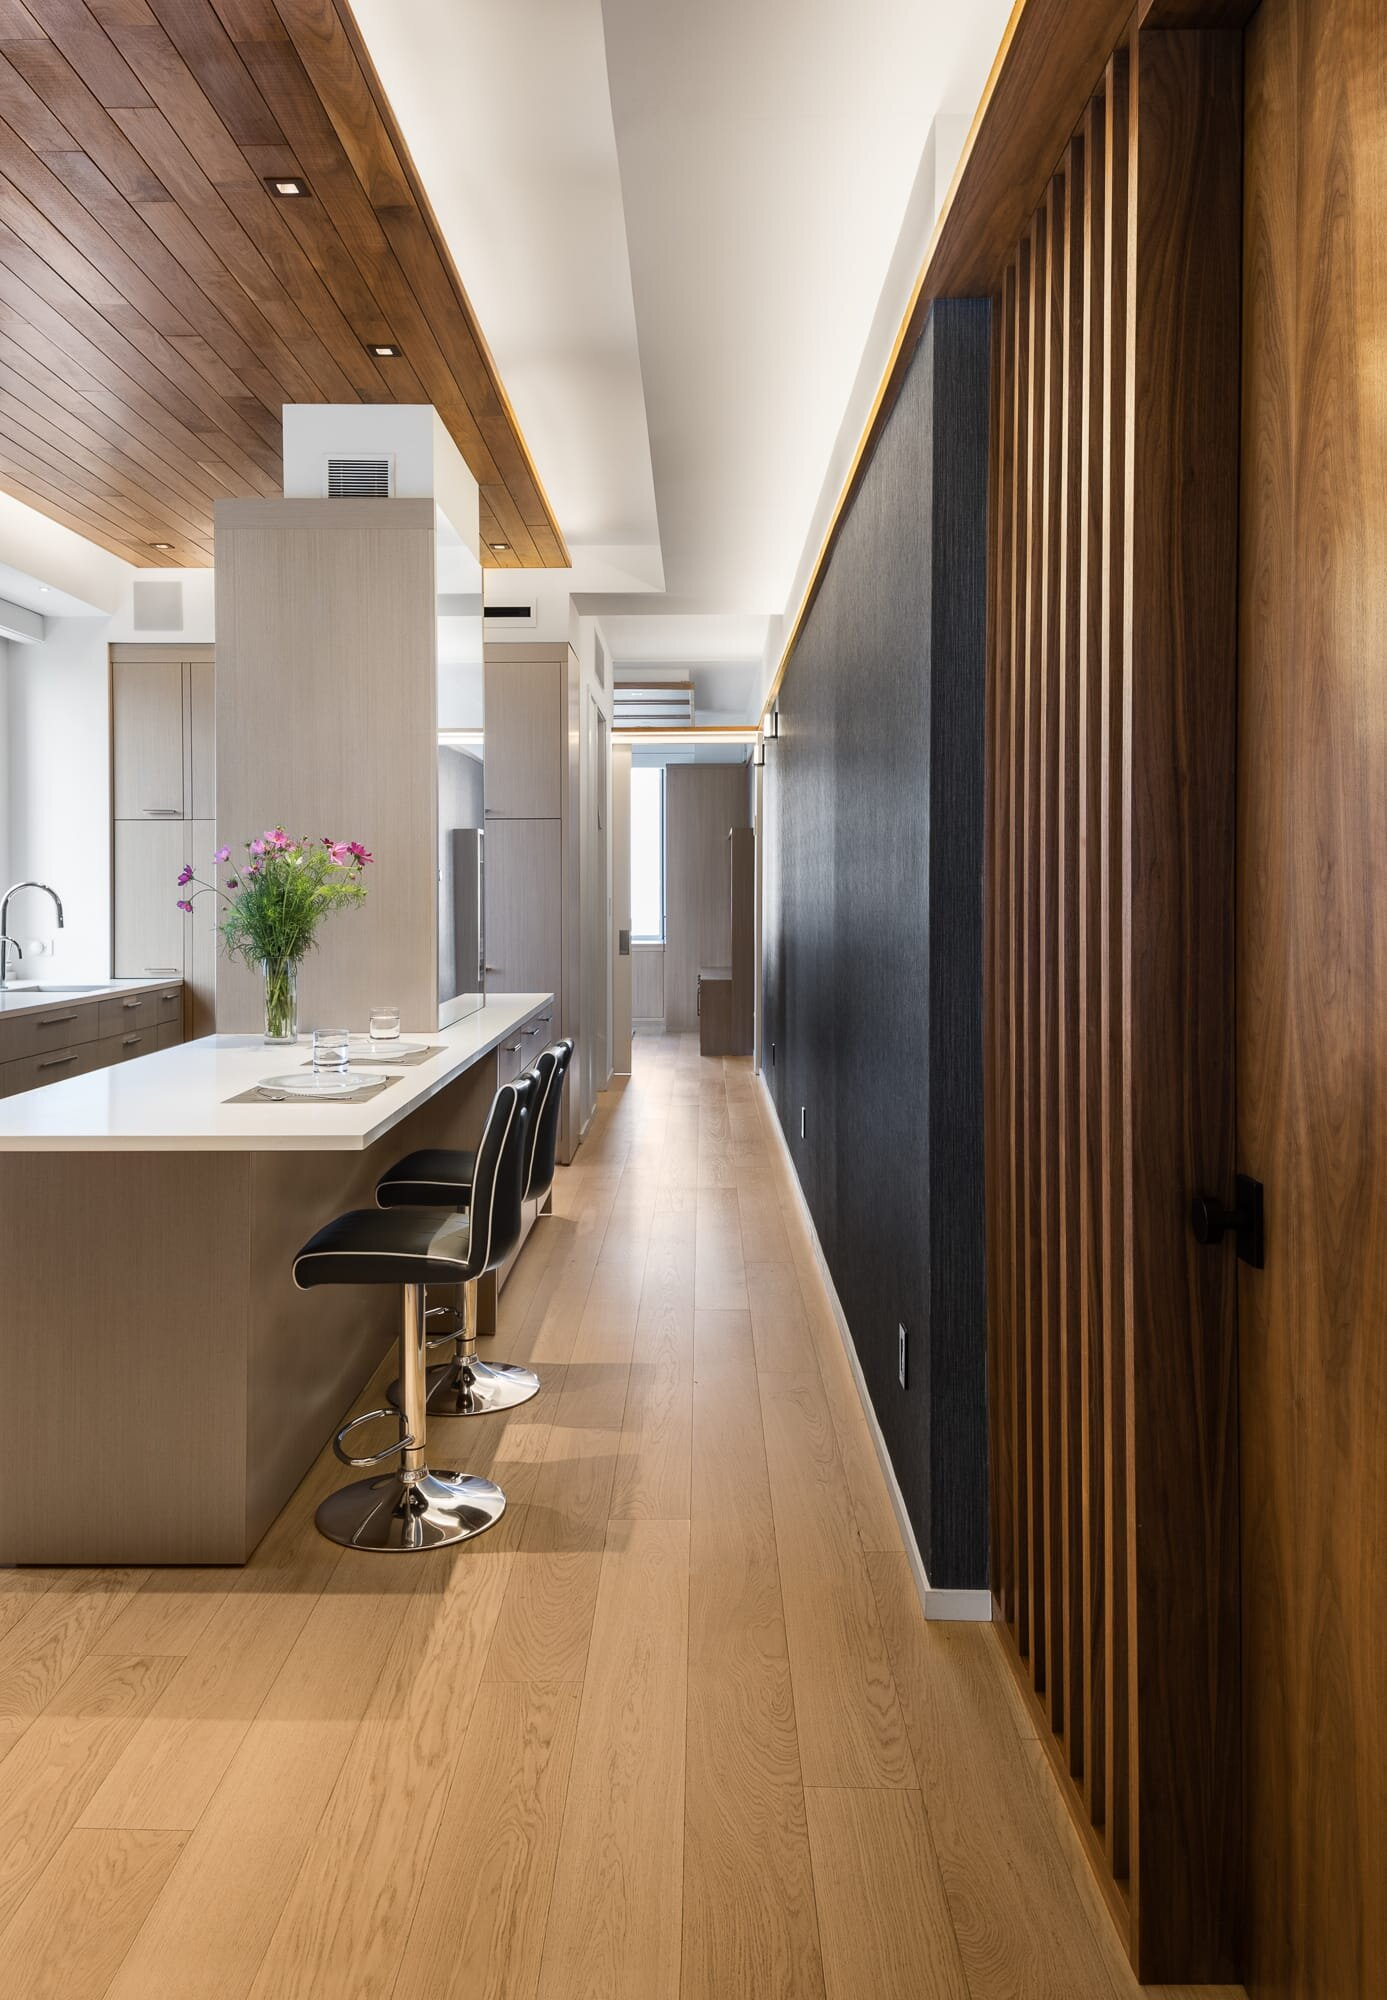 Luxury kitchen through the hallway to another room